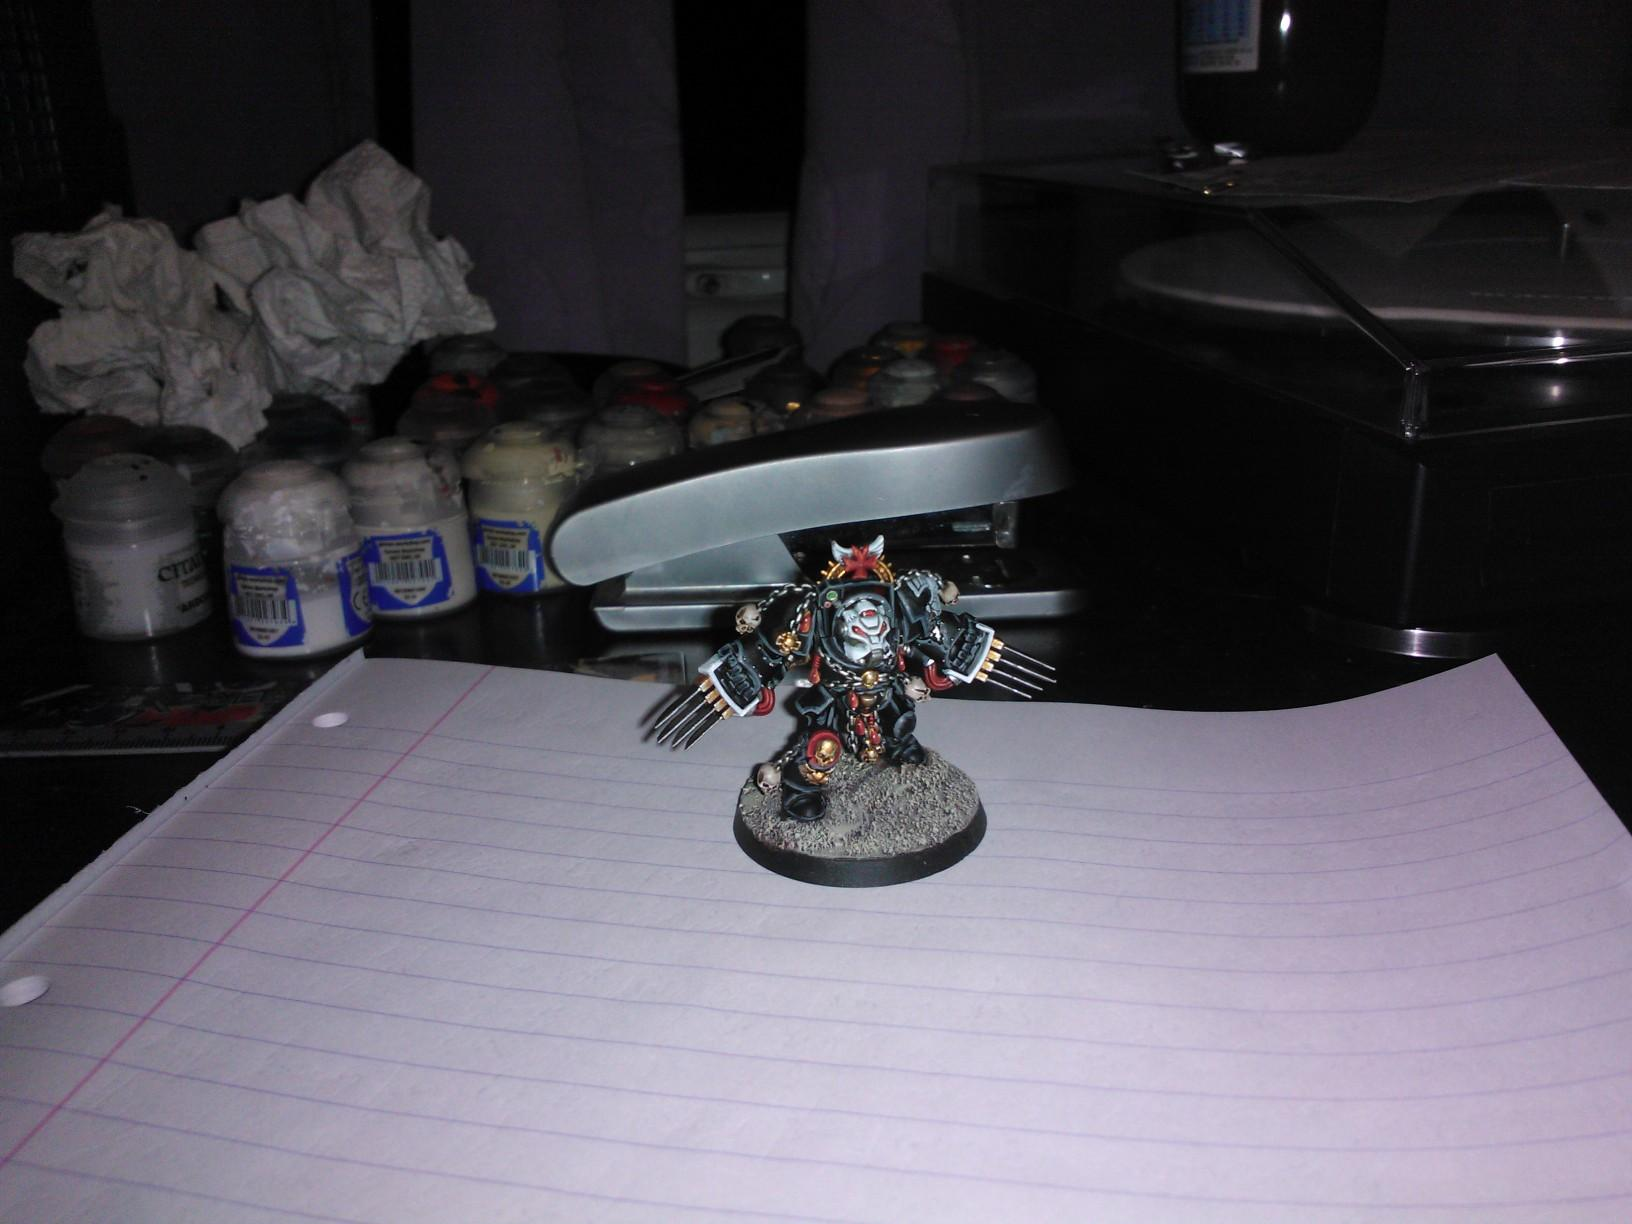 Assault, Black, Black Templars, Blanche, Blood Angels, Chainsword, Conversion, Forge World, Imperium, Lightning Claws, Space Hulk, Space Marines, Tactical Squad, Templars, Terminator Armor